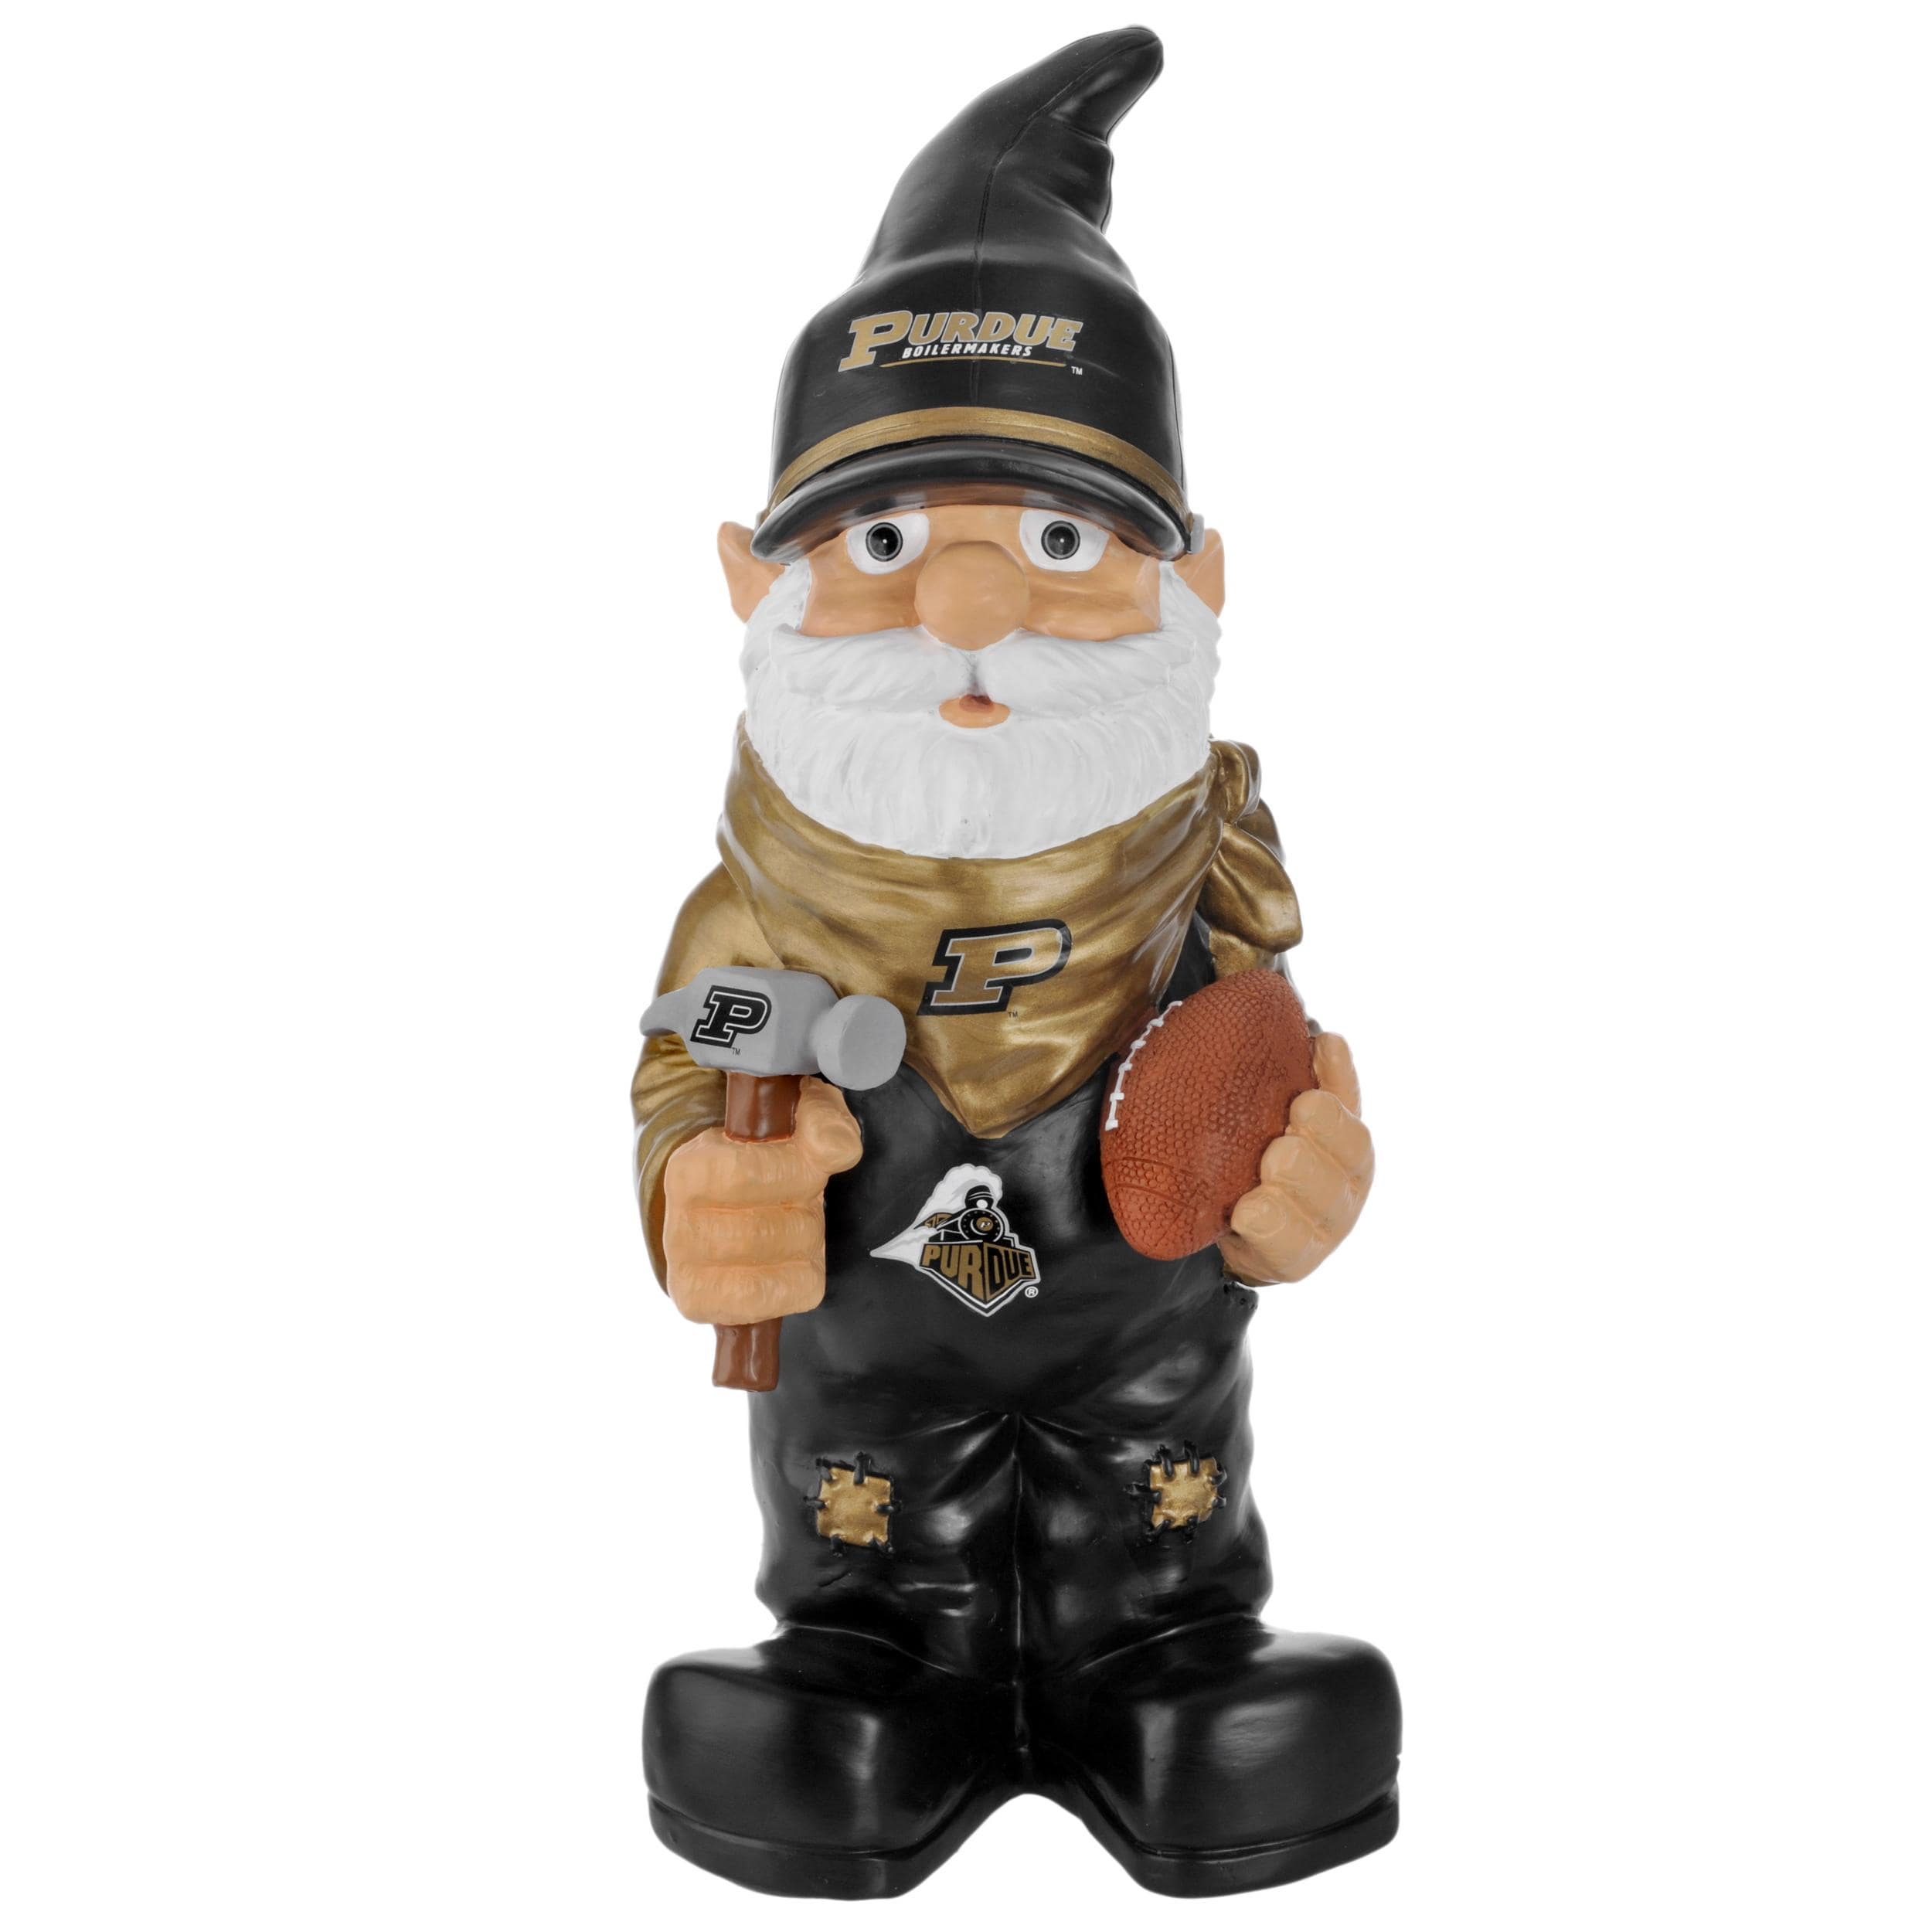 Purdue Boilermakers 11-inch Thematic Garden Gnome